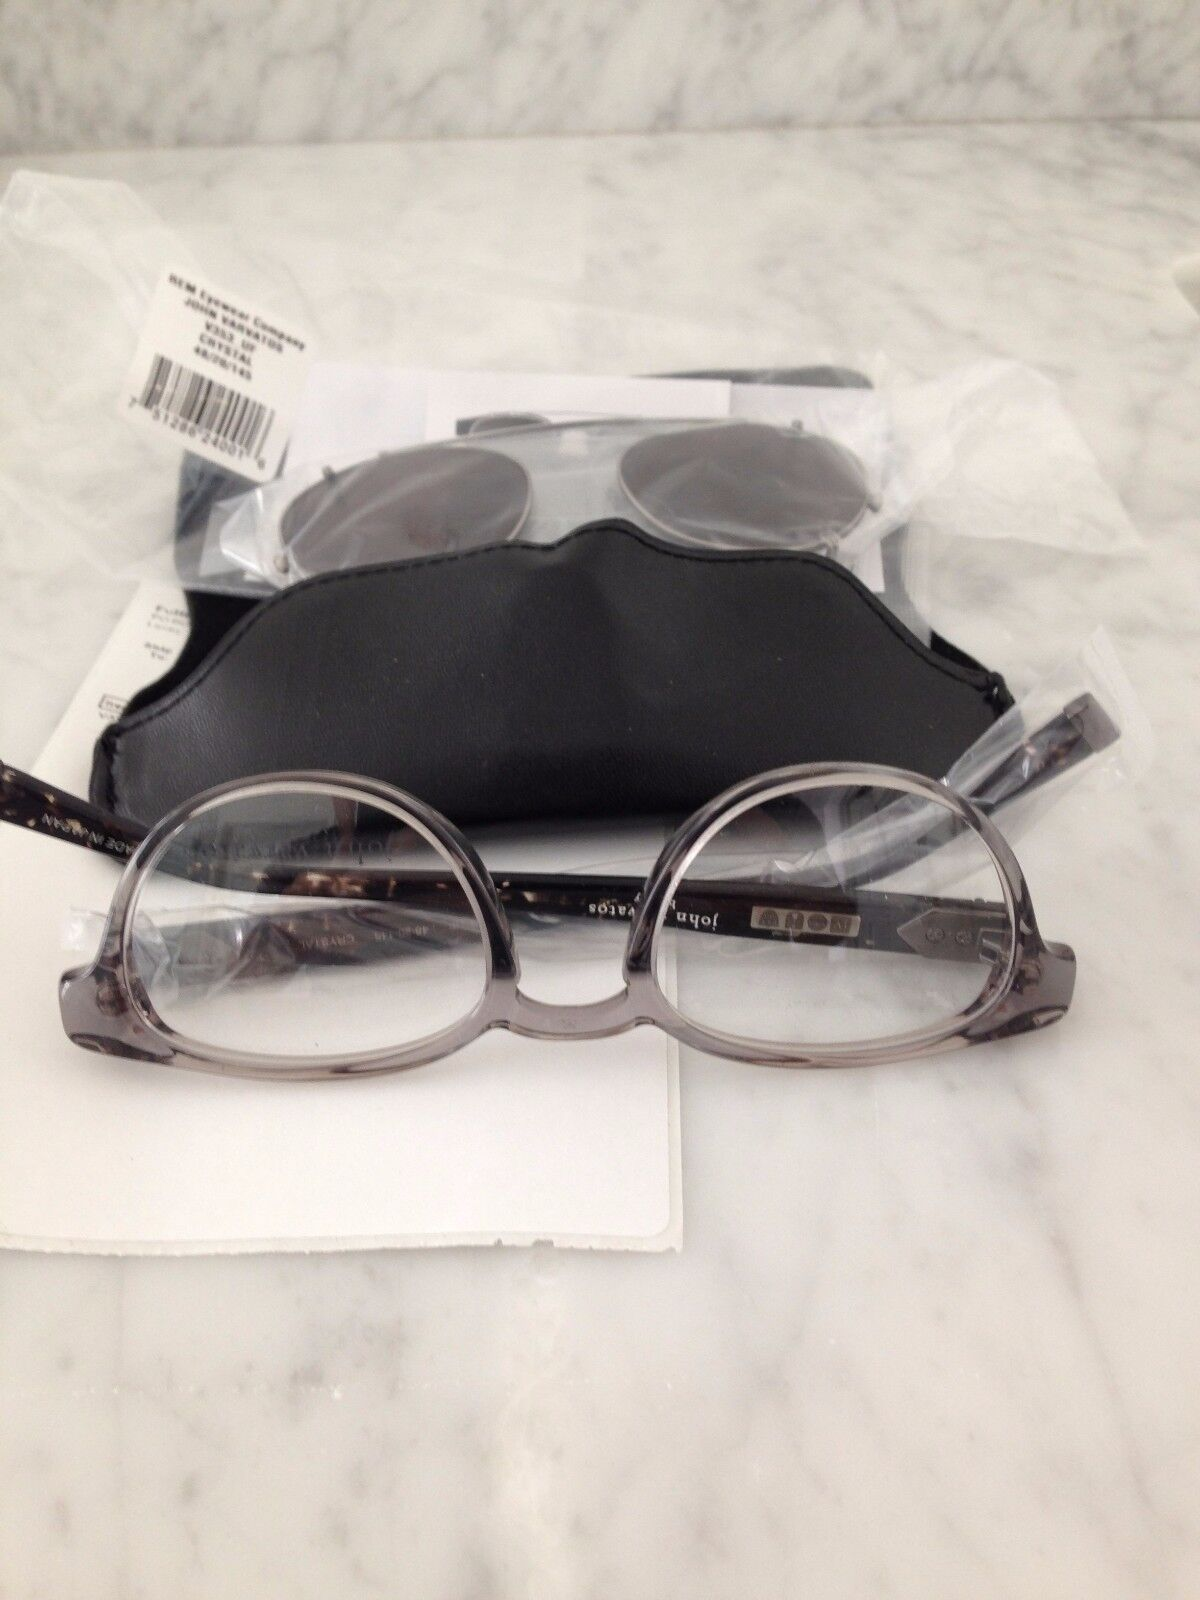 John Varvatos Glasses with Clip On Shades - New